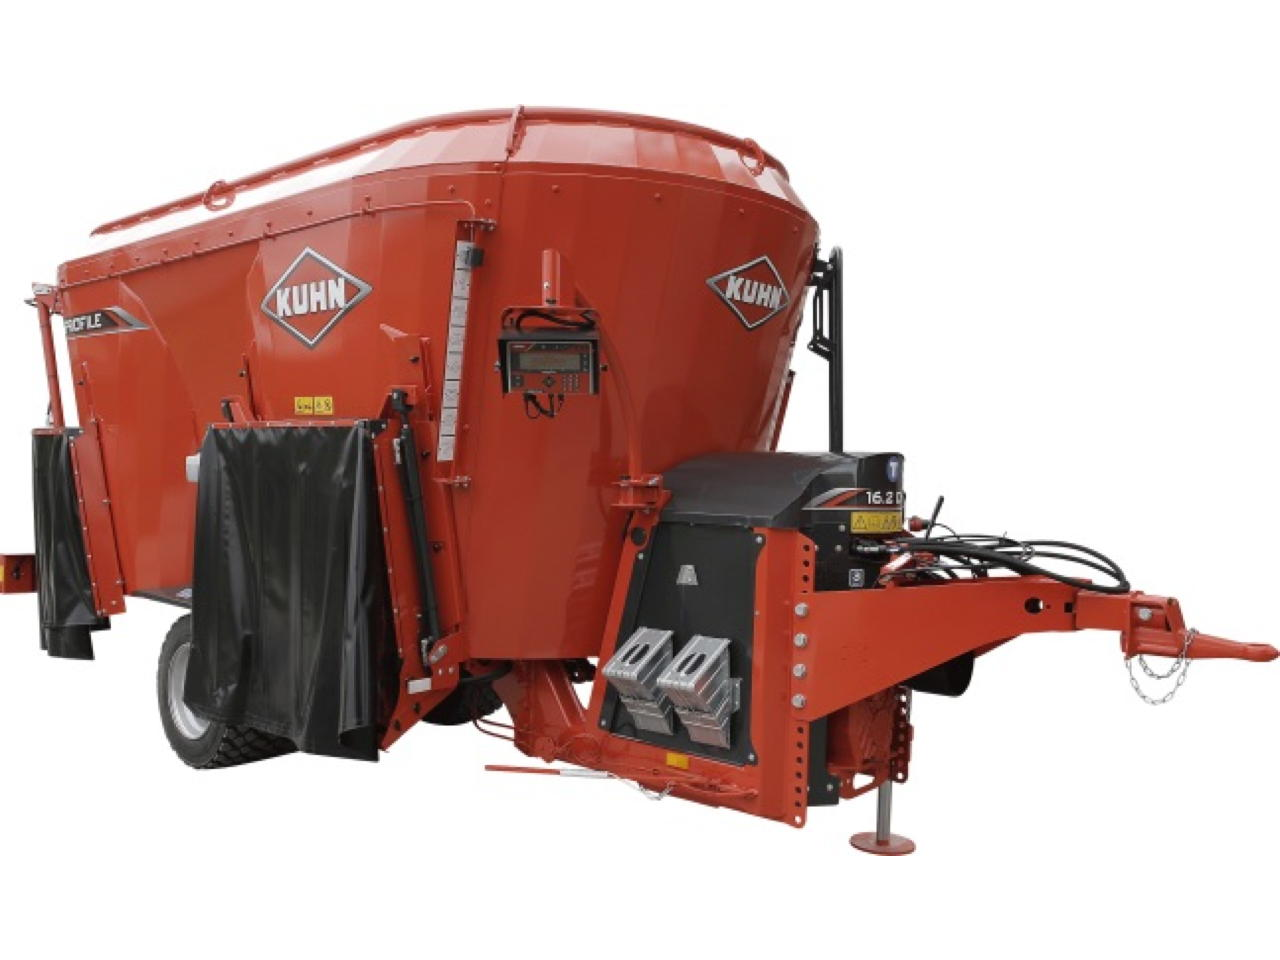 Kuhn Profile 2 DS Profile 13.2 DS